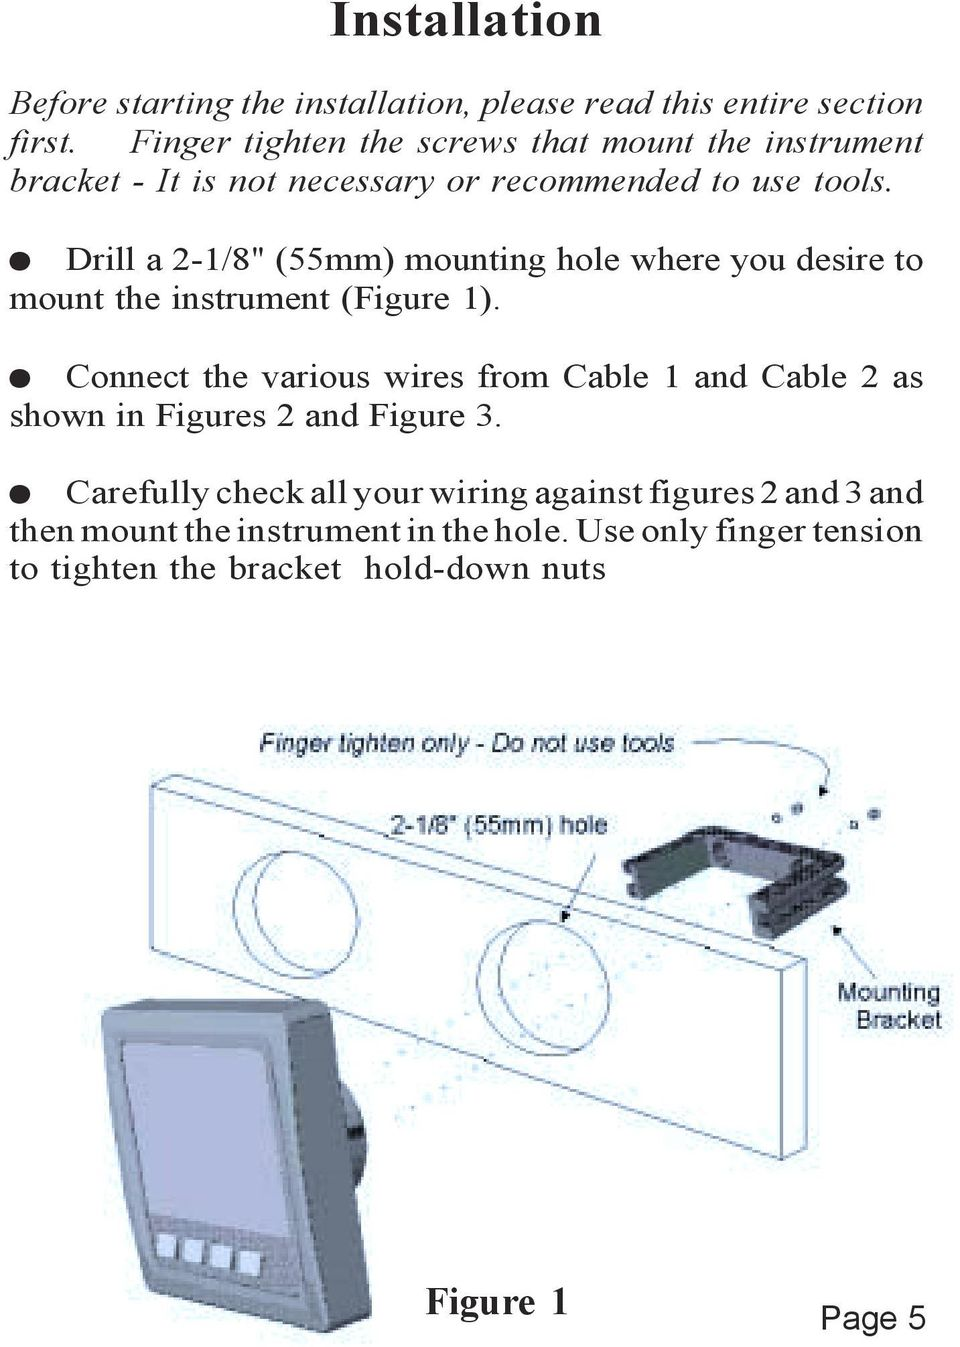 "l Drill a 2-1/8"" (55mm) mounting hole where you desire to mount the instrument (Figure 1)."